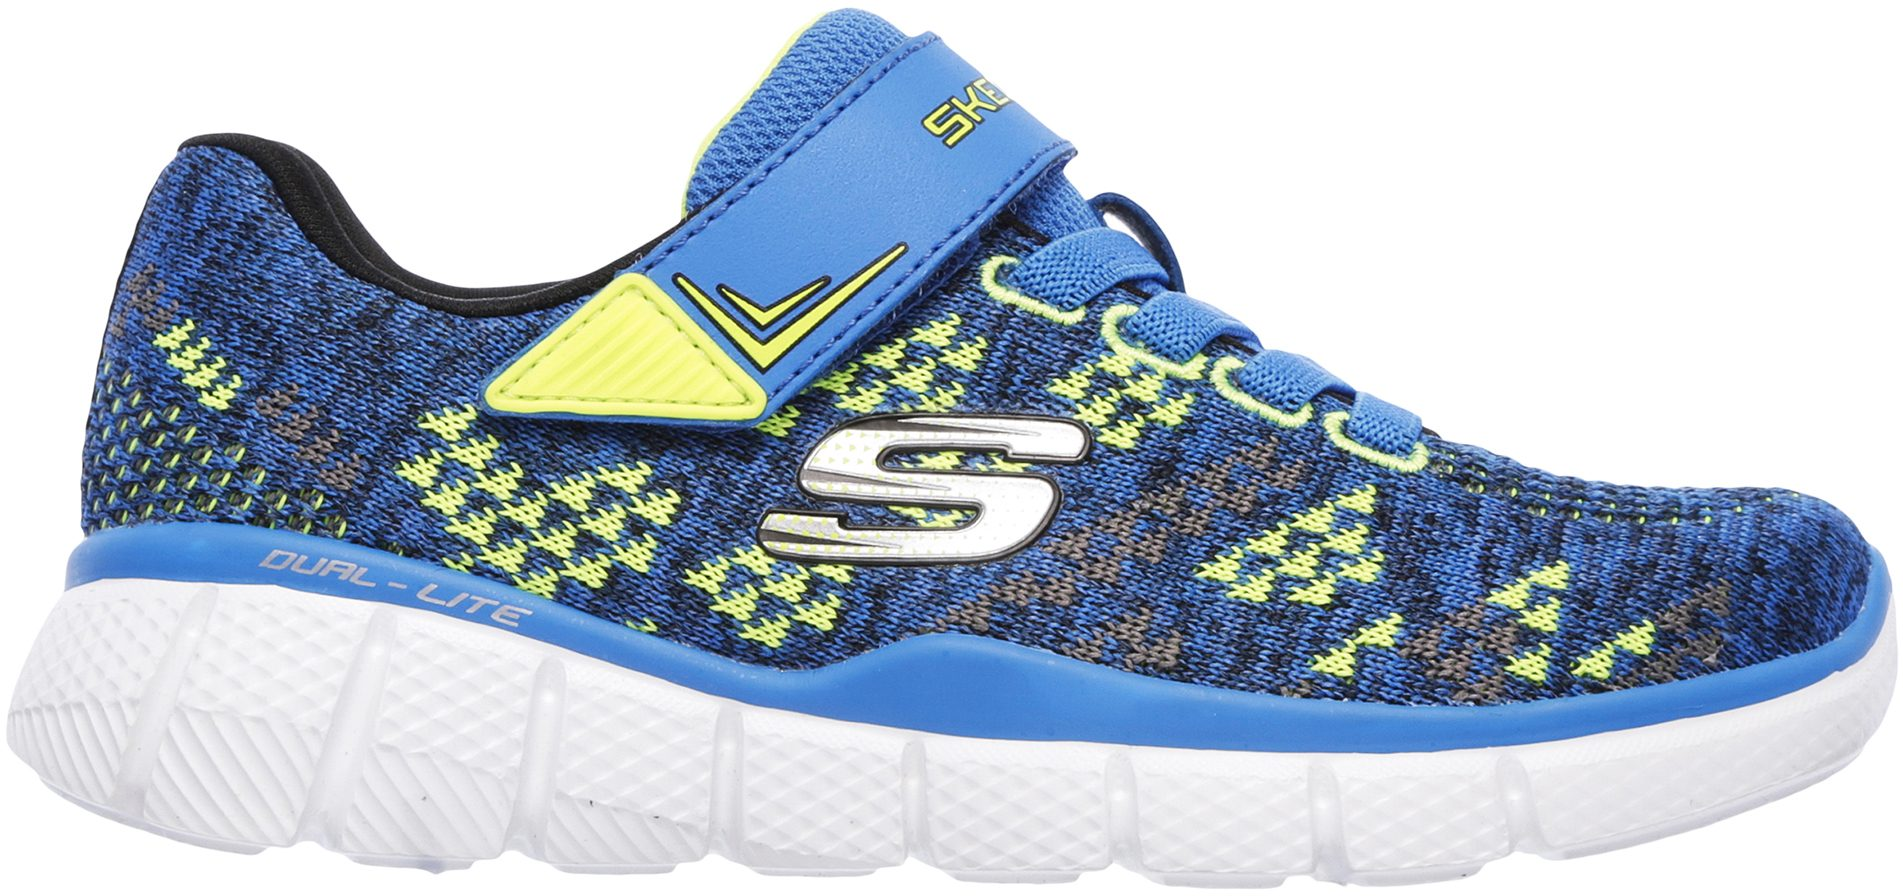 cfd69cf3348c Skechers Equalizer 2.0 - Point Keeper Blue   Lime 97379L BLLM - Boys  Trainers - Humphries Shoes